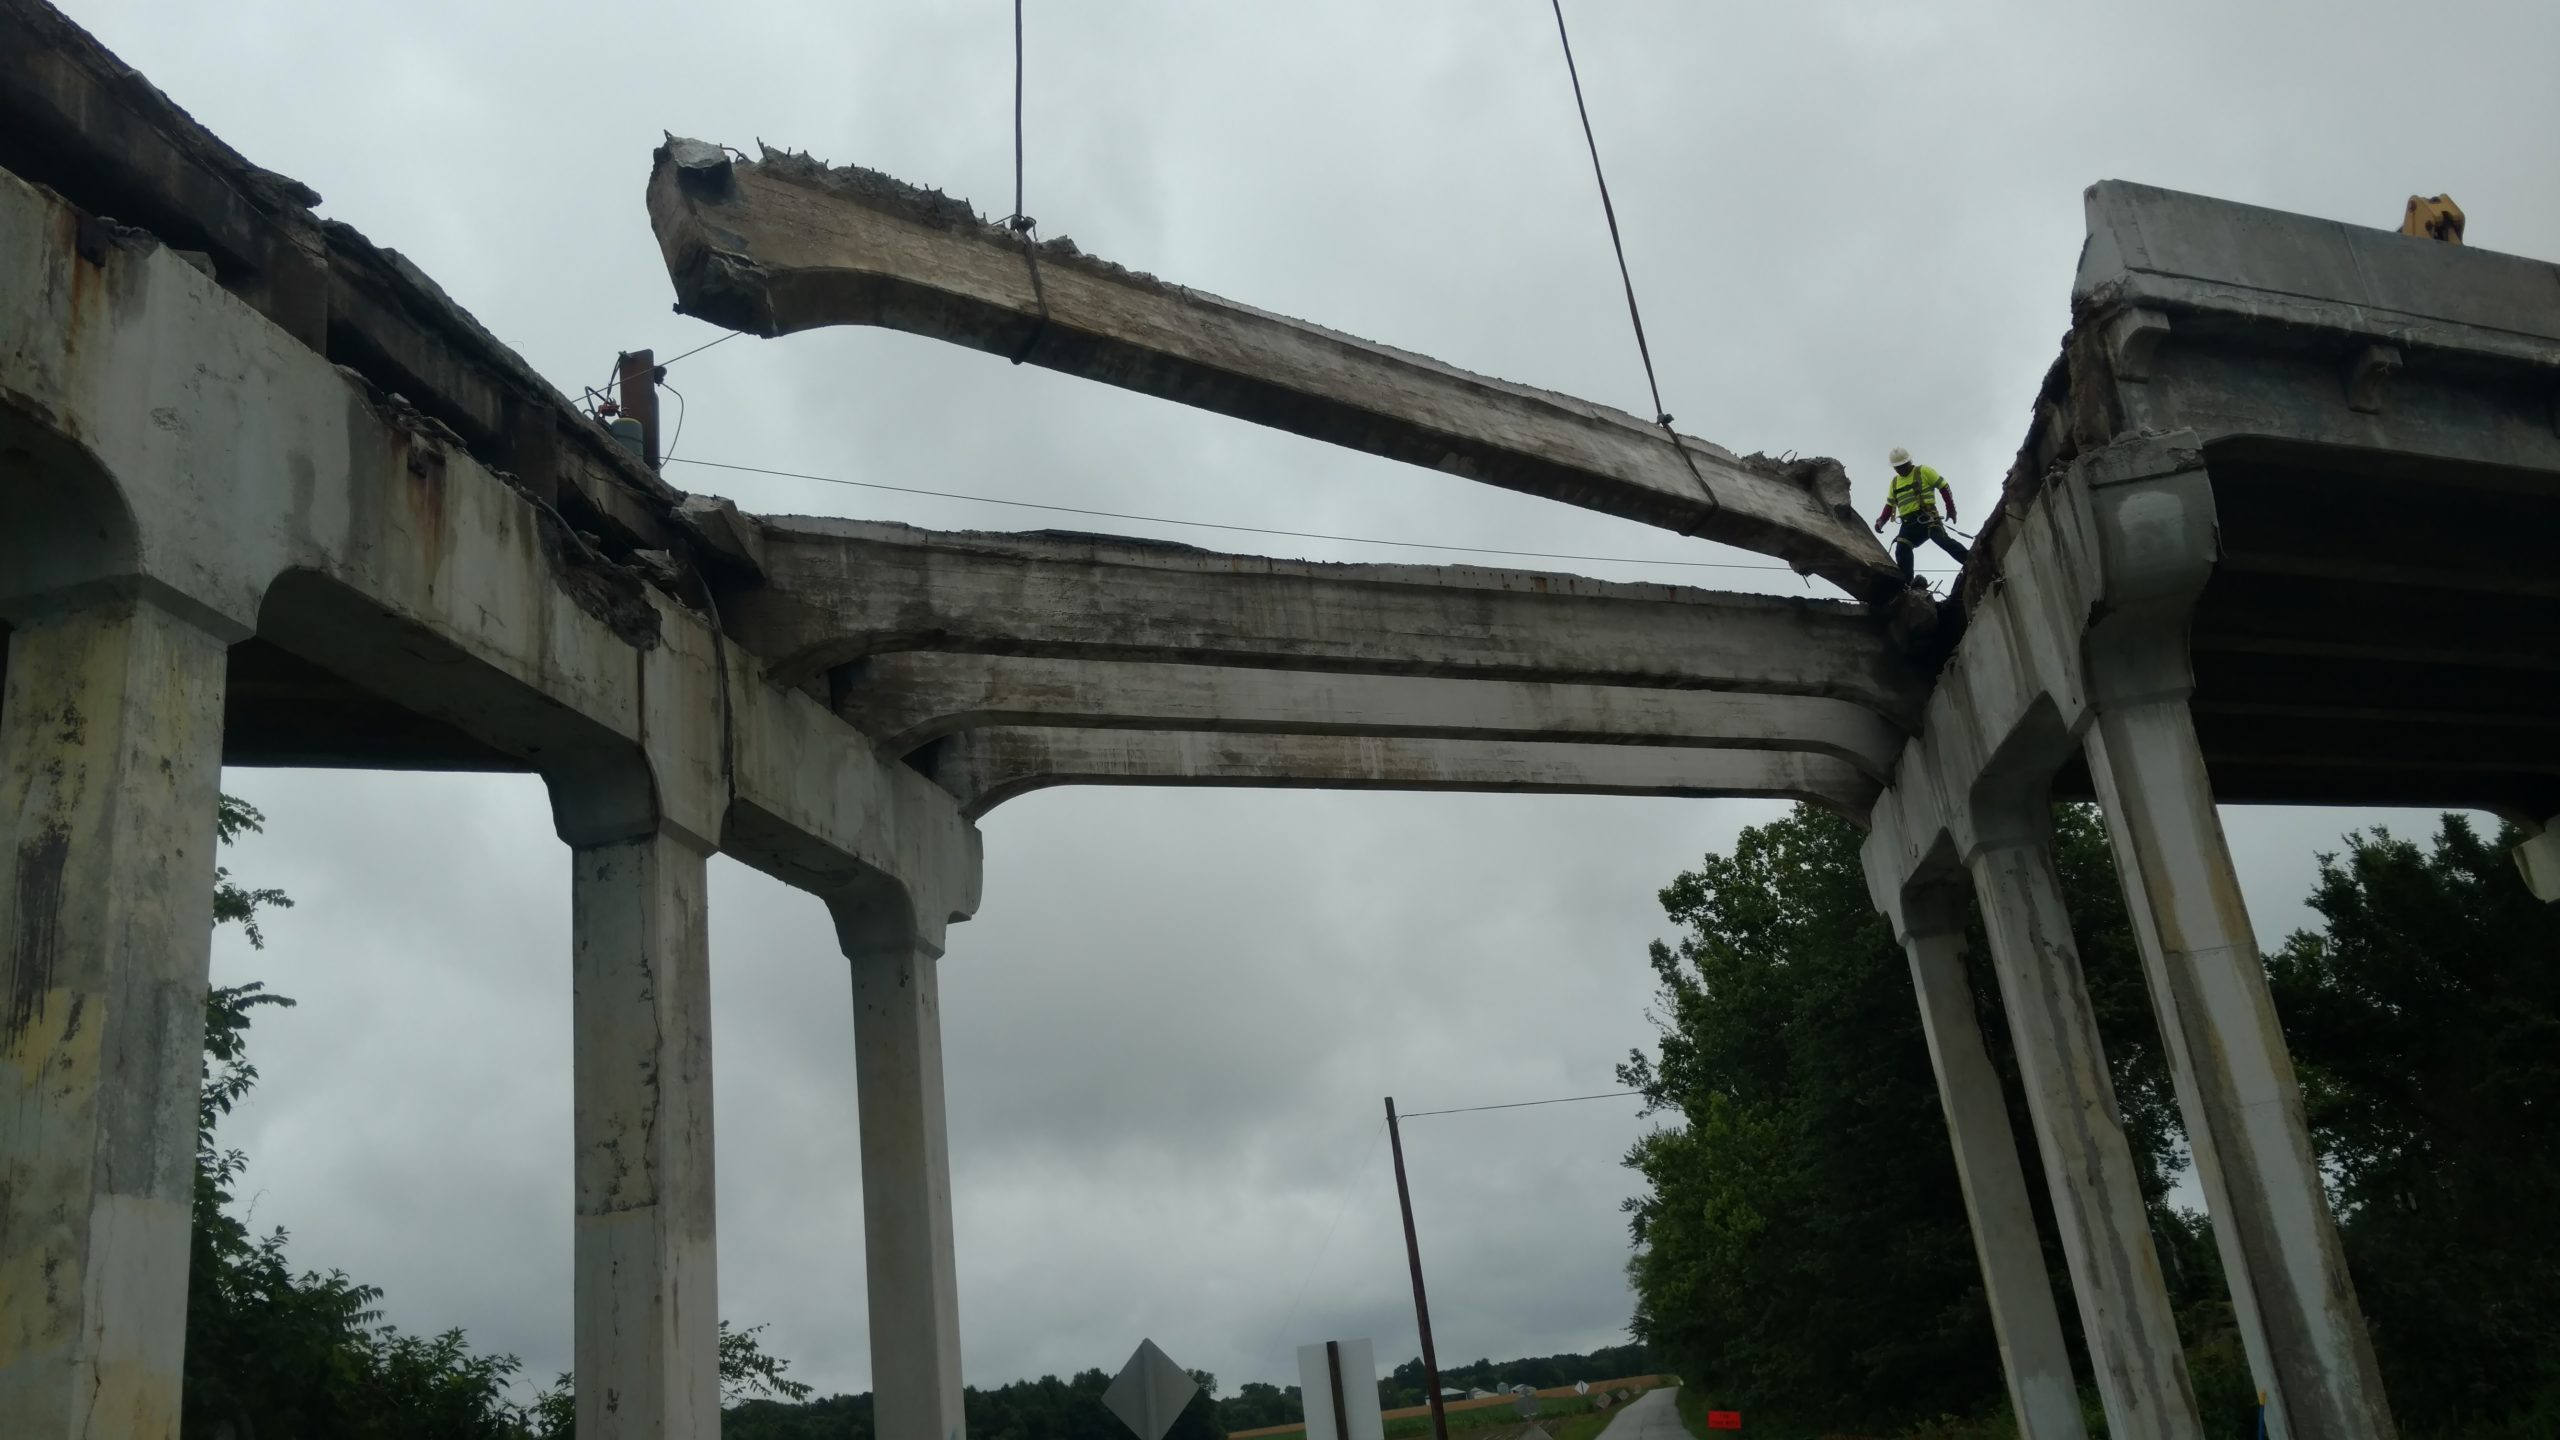 Removal of existing bridge beams over Rte. 632